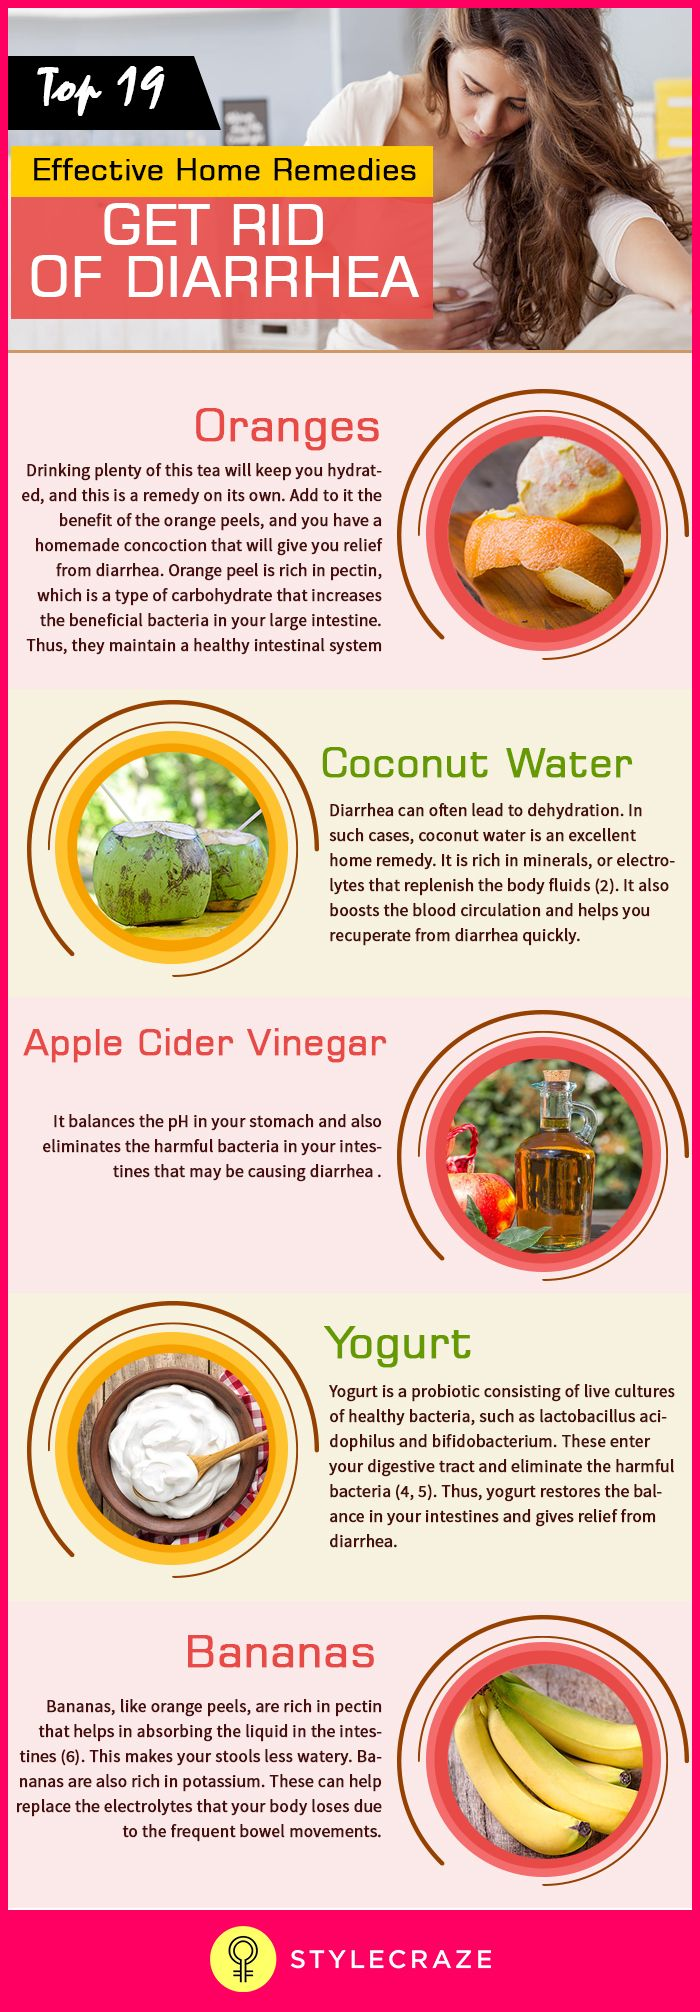 Top 19 Effective Home Remedies To Prevent Urinary Tract Infection